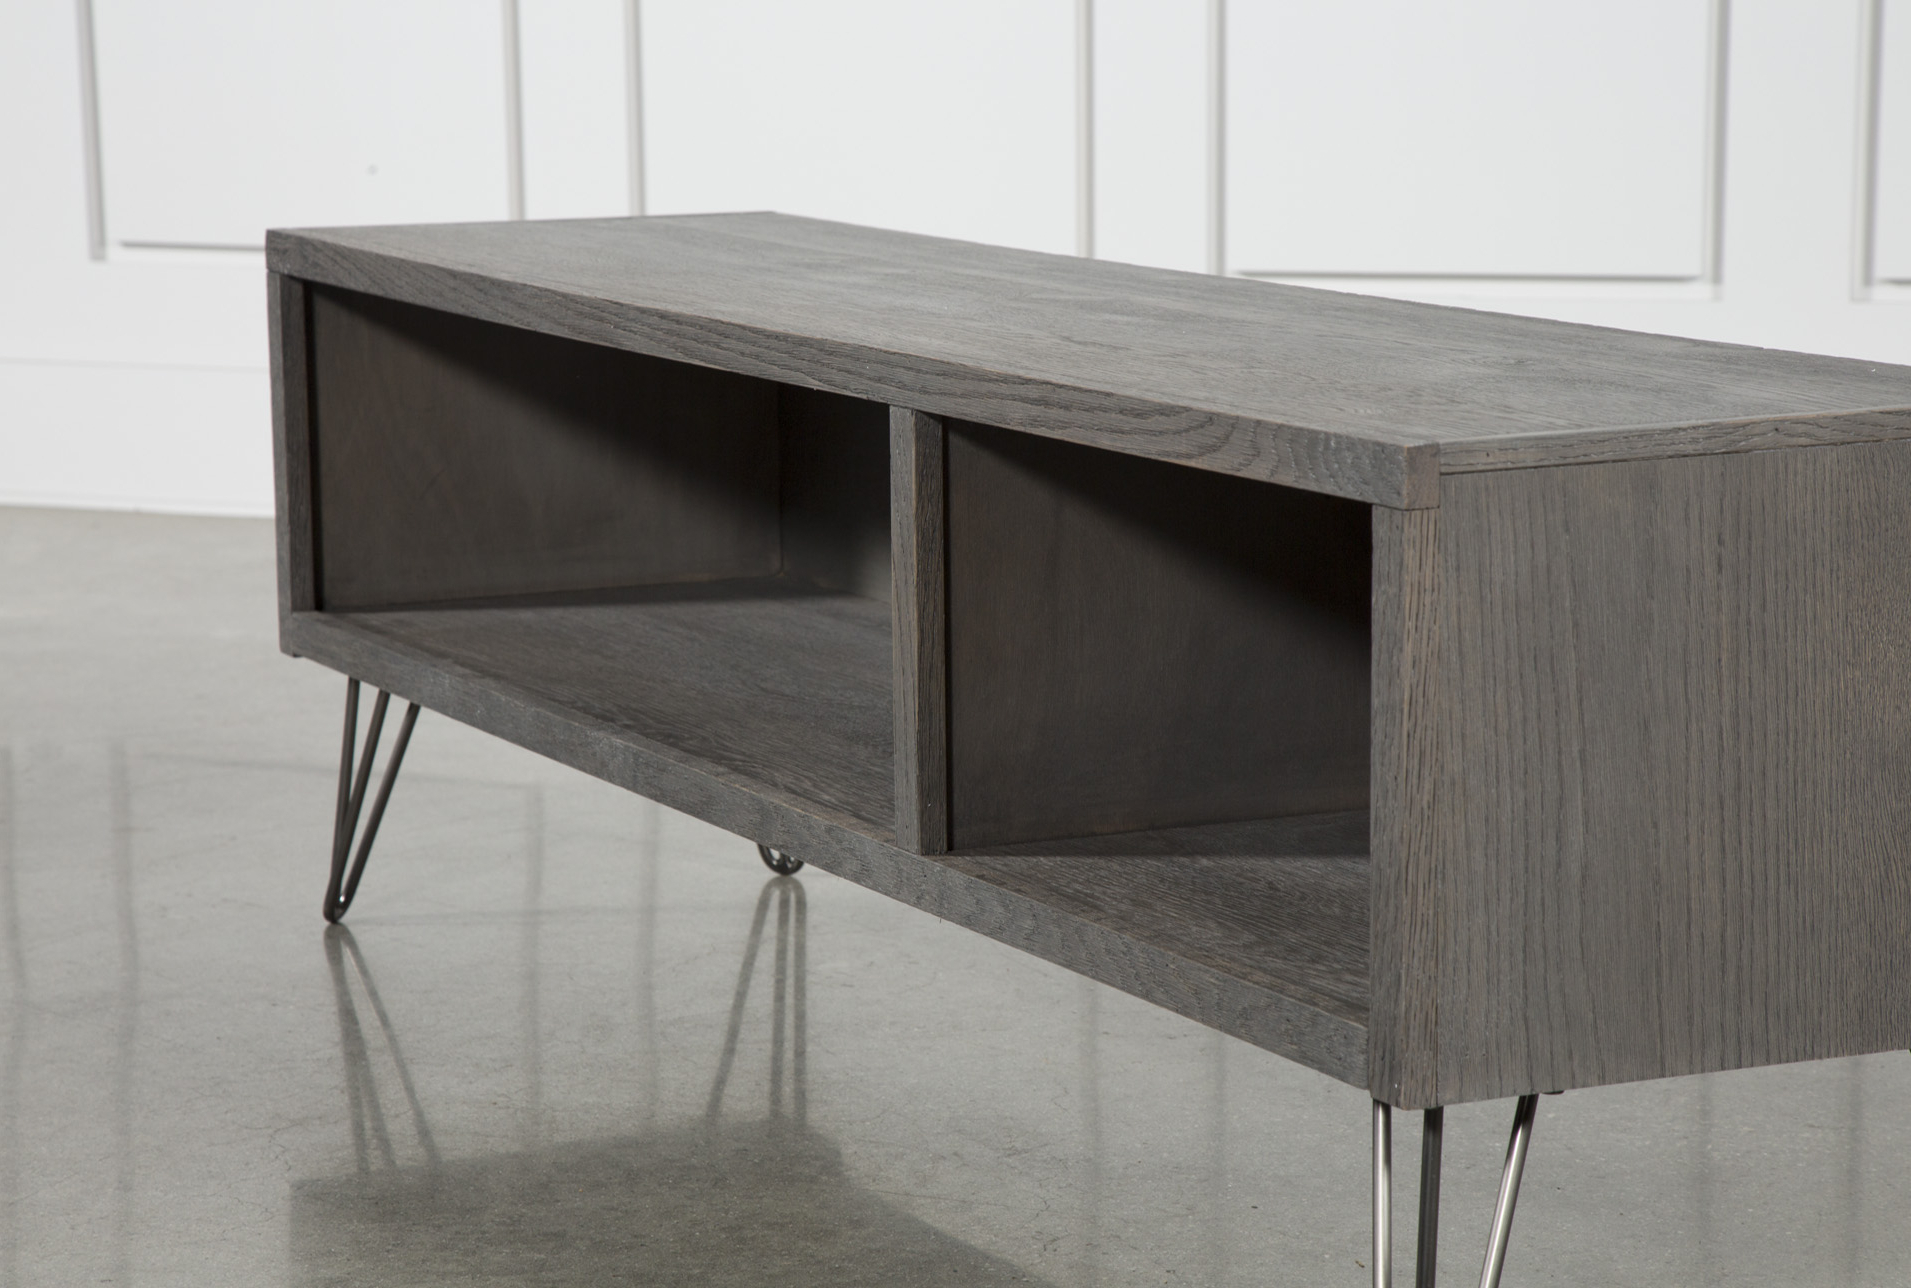 Melrose Titanium 65 Inch Lowboy Tv Stand | Lowboy, Tv Stands And Pertaining To Melrose Titanium 65 Inch Lowboy Tv Stands (View 3 of 18)